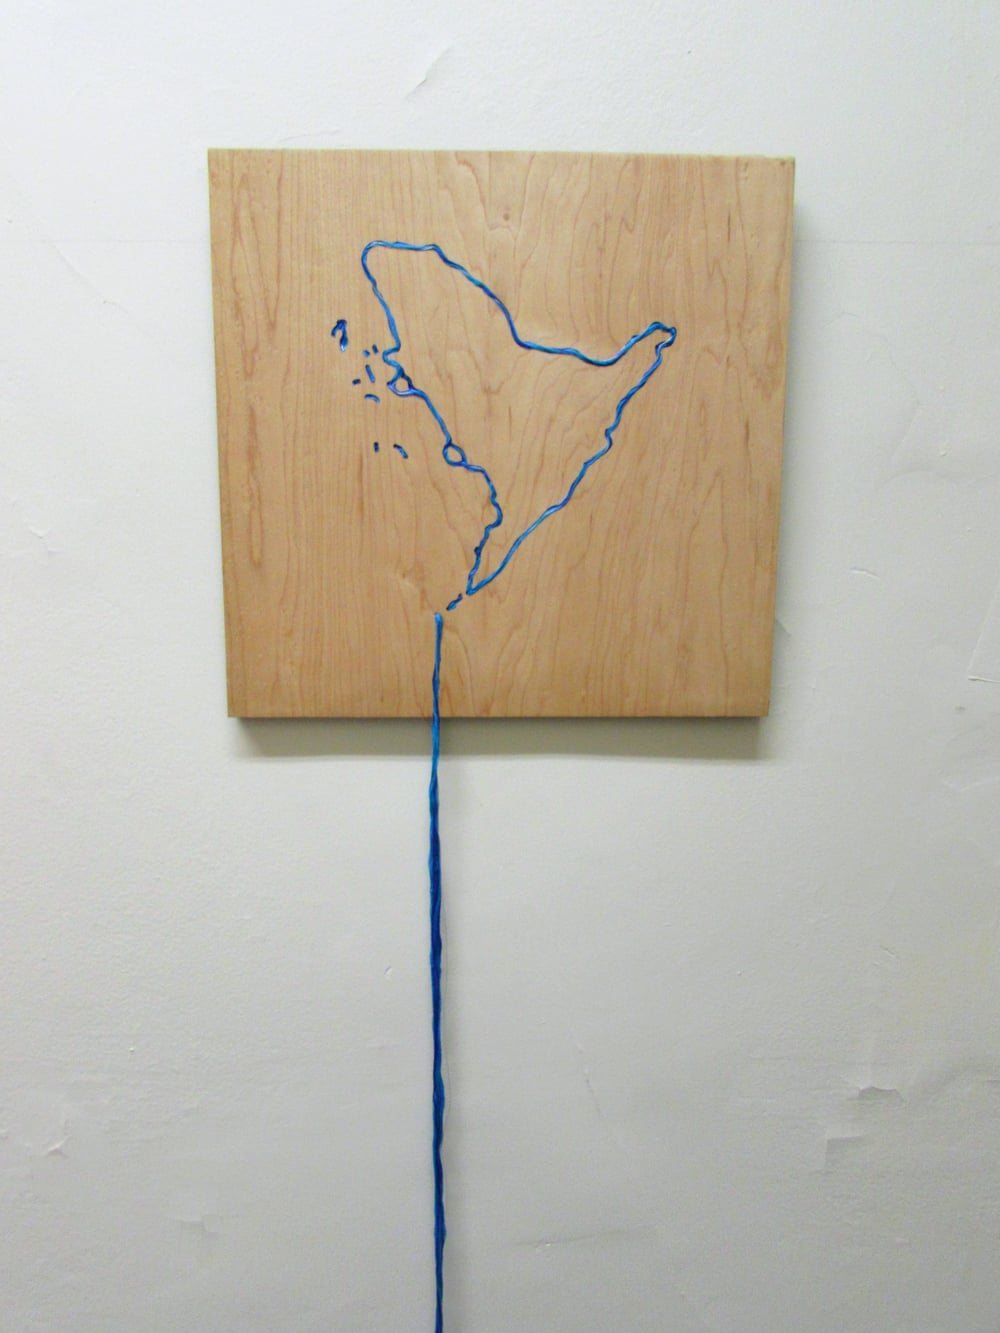 The Arctic Meltdown, 2007 Embroidered plywood 15.5 x 15.5 x 68 inches2 016.